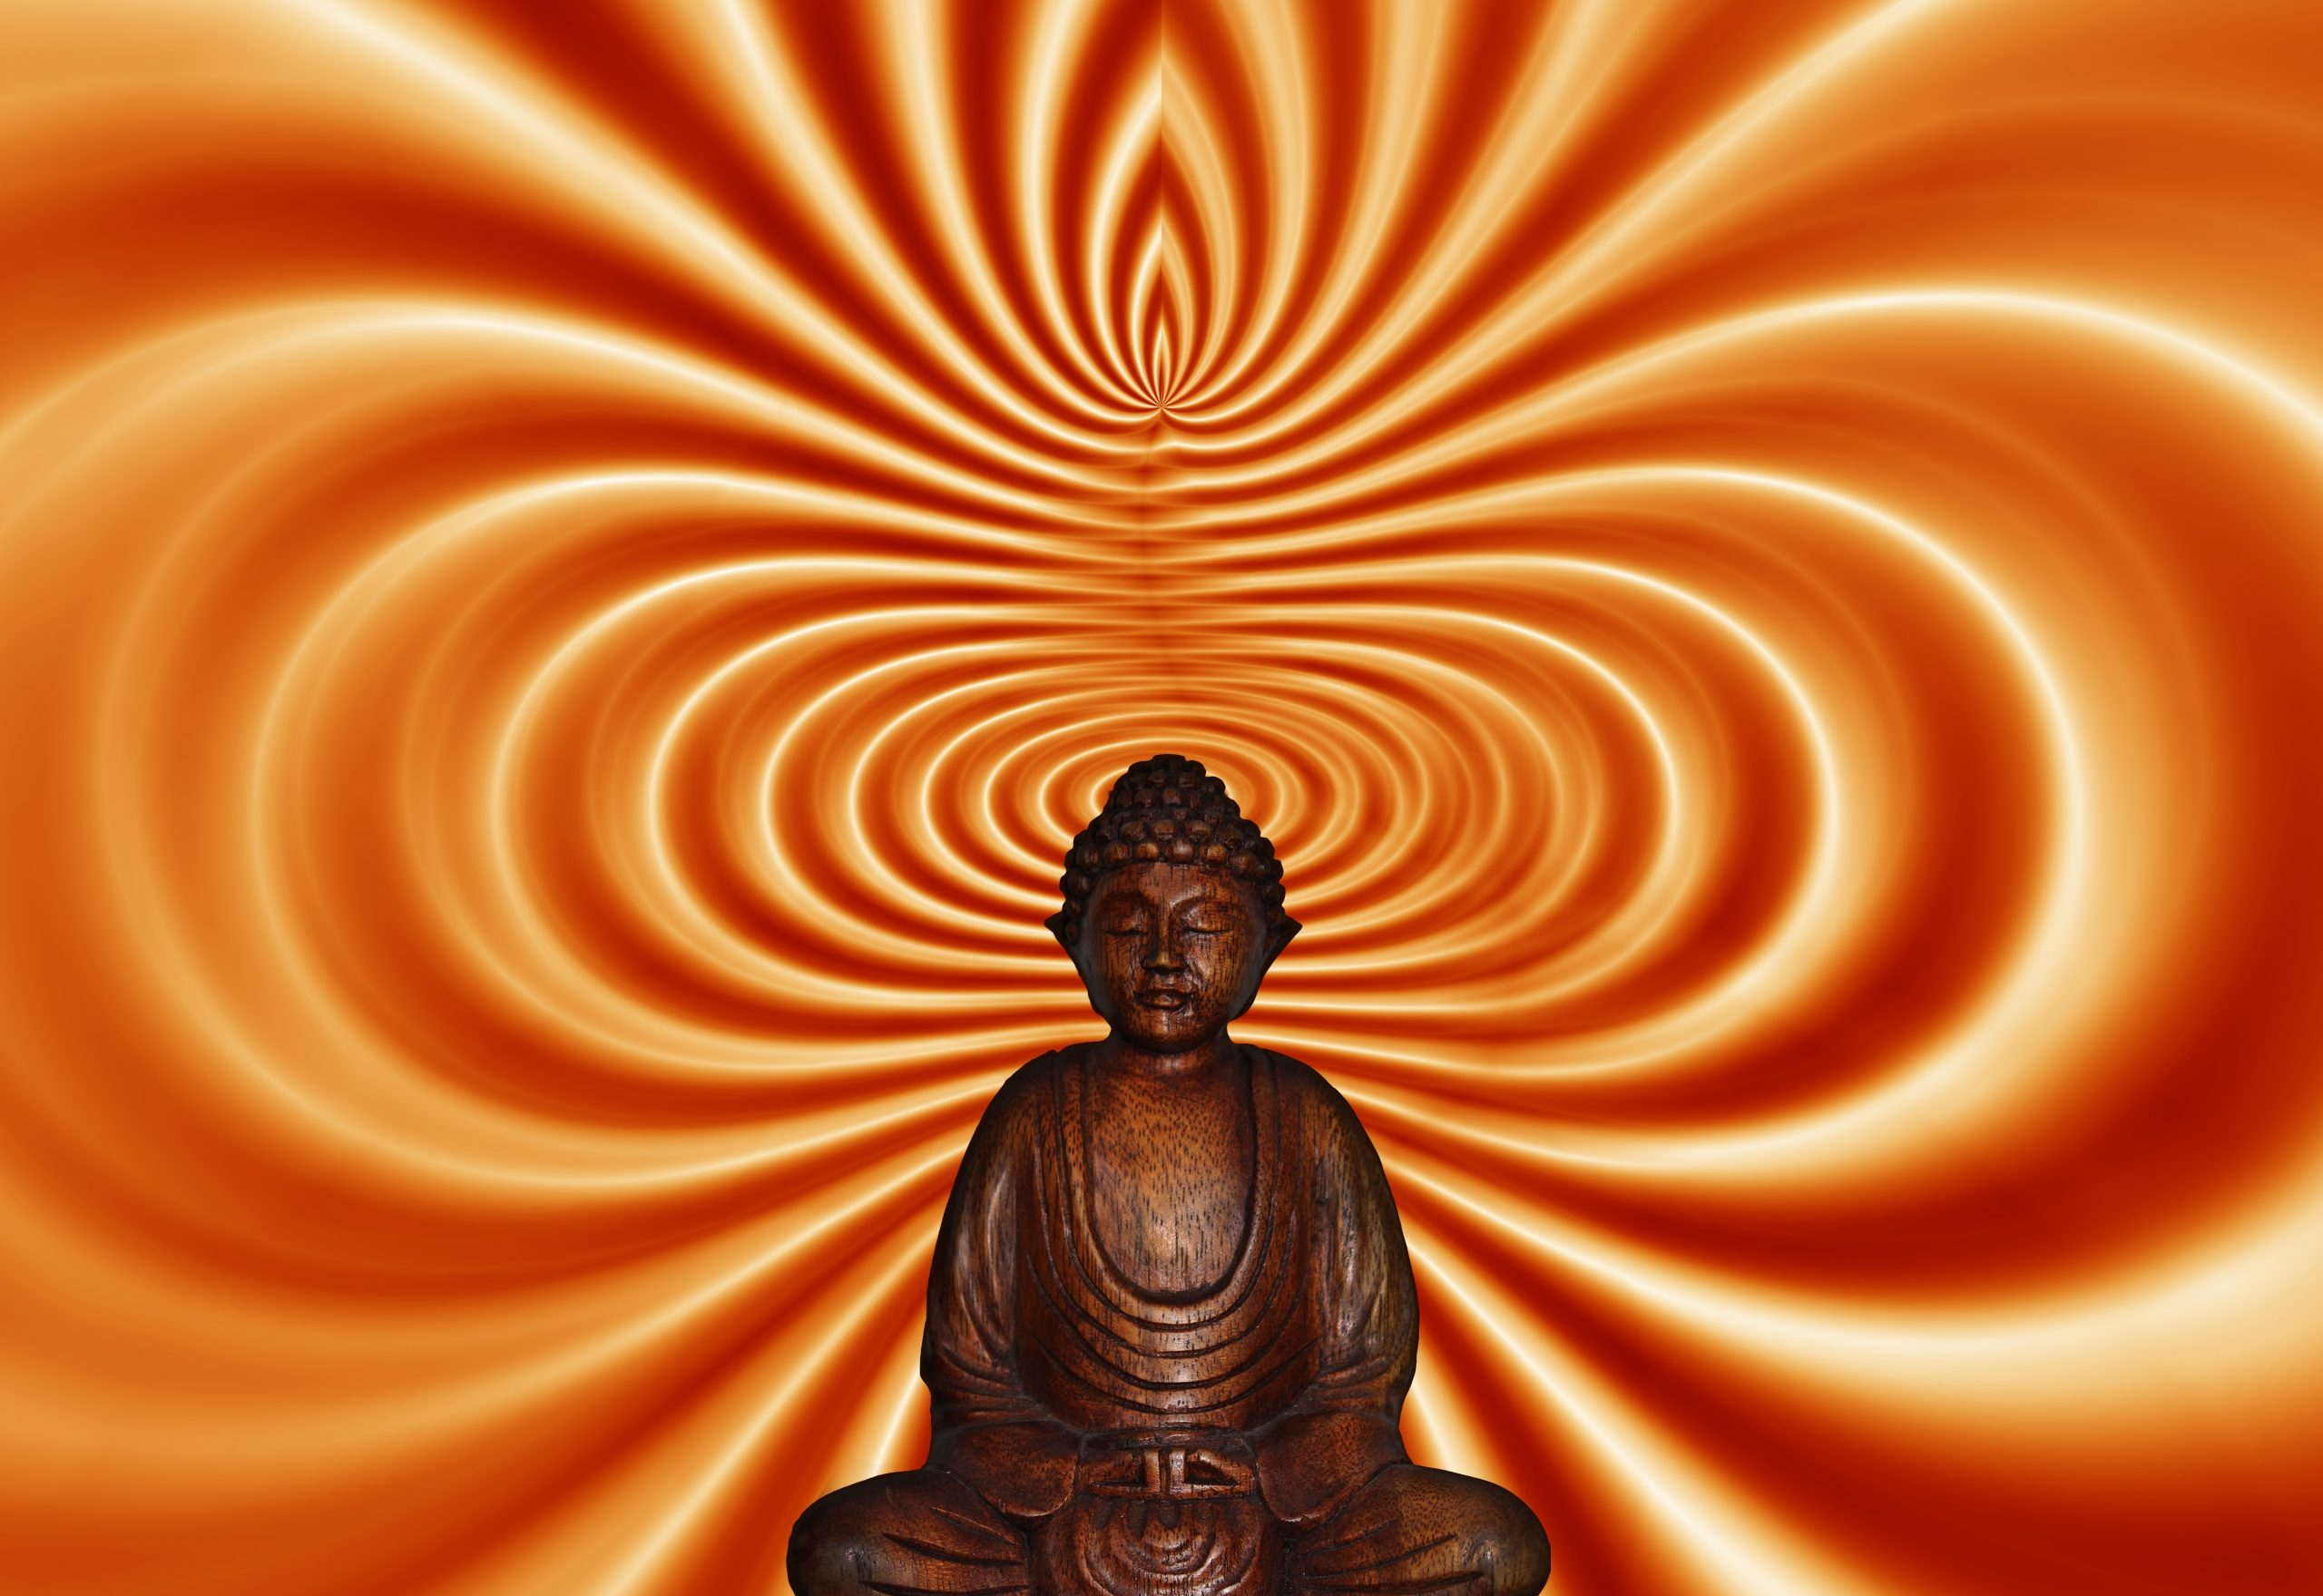 Orange, Gautama Buddha, Meditation